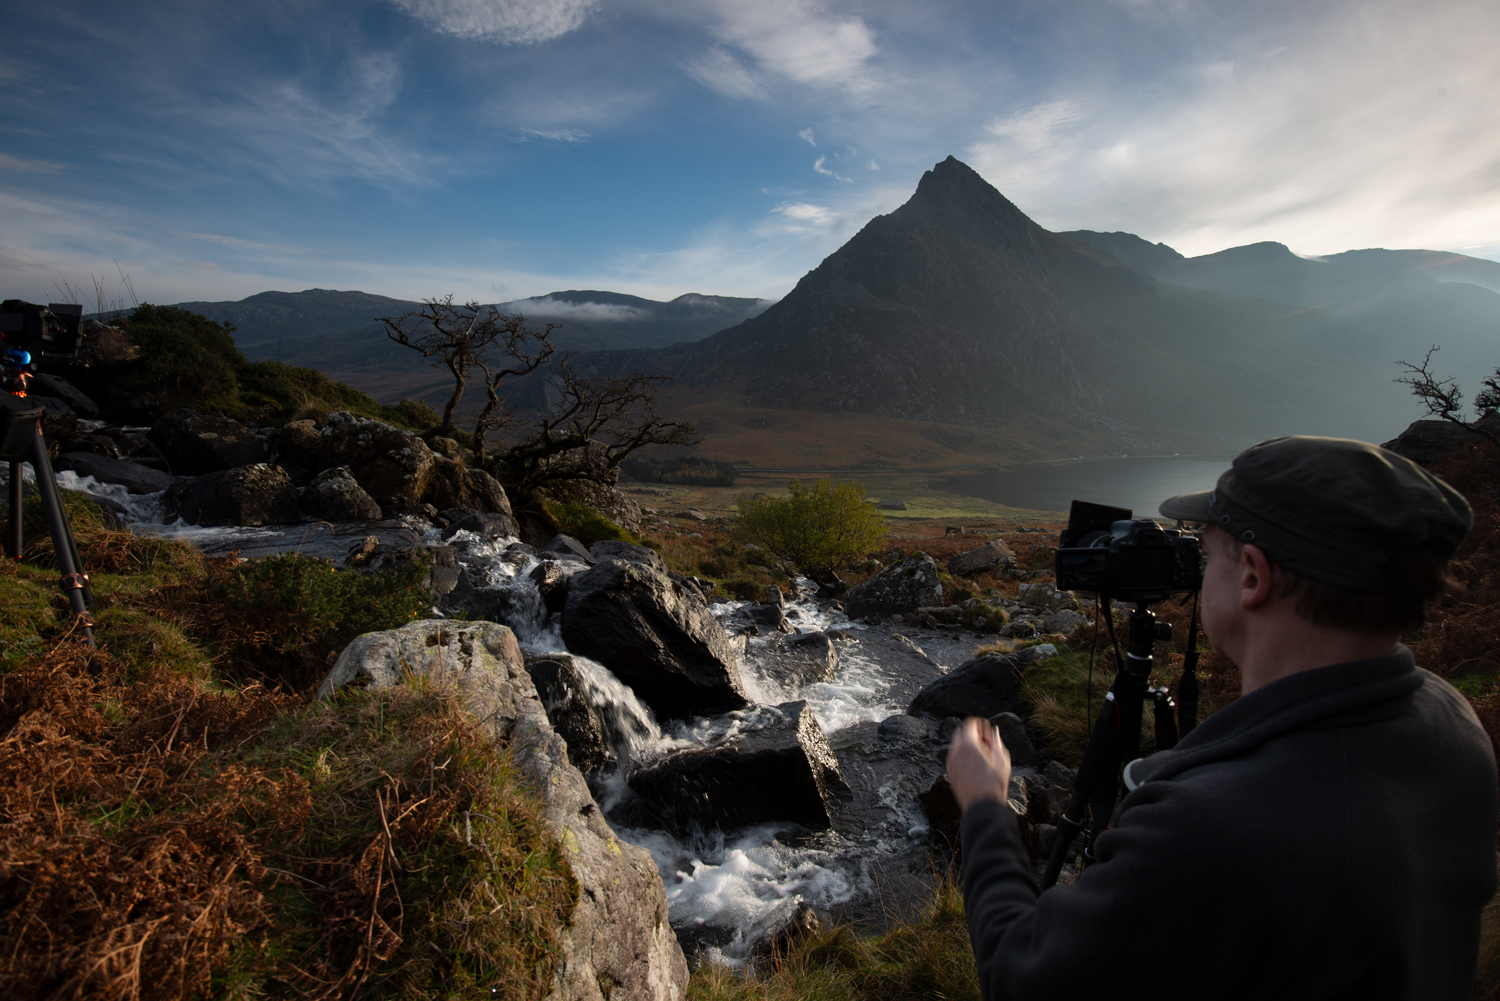 Tryfan from Afon Lloer, Snowdonia. Photography workshop with Nigel Forster